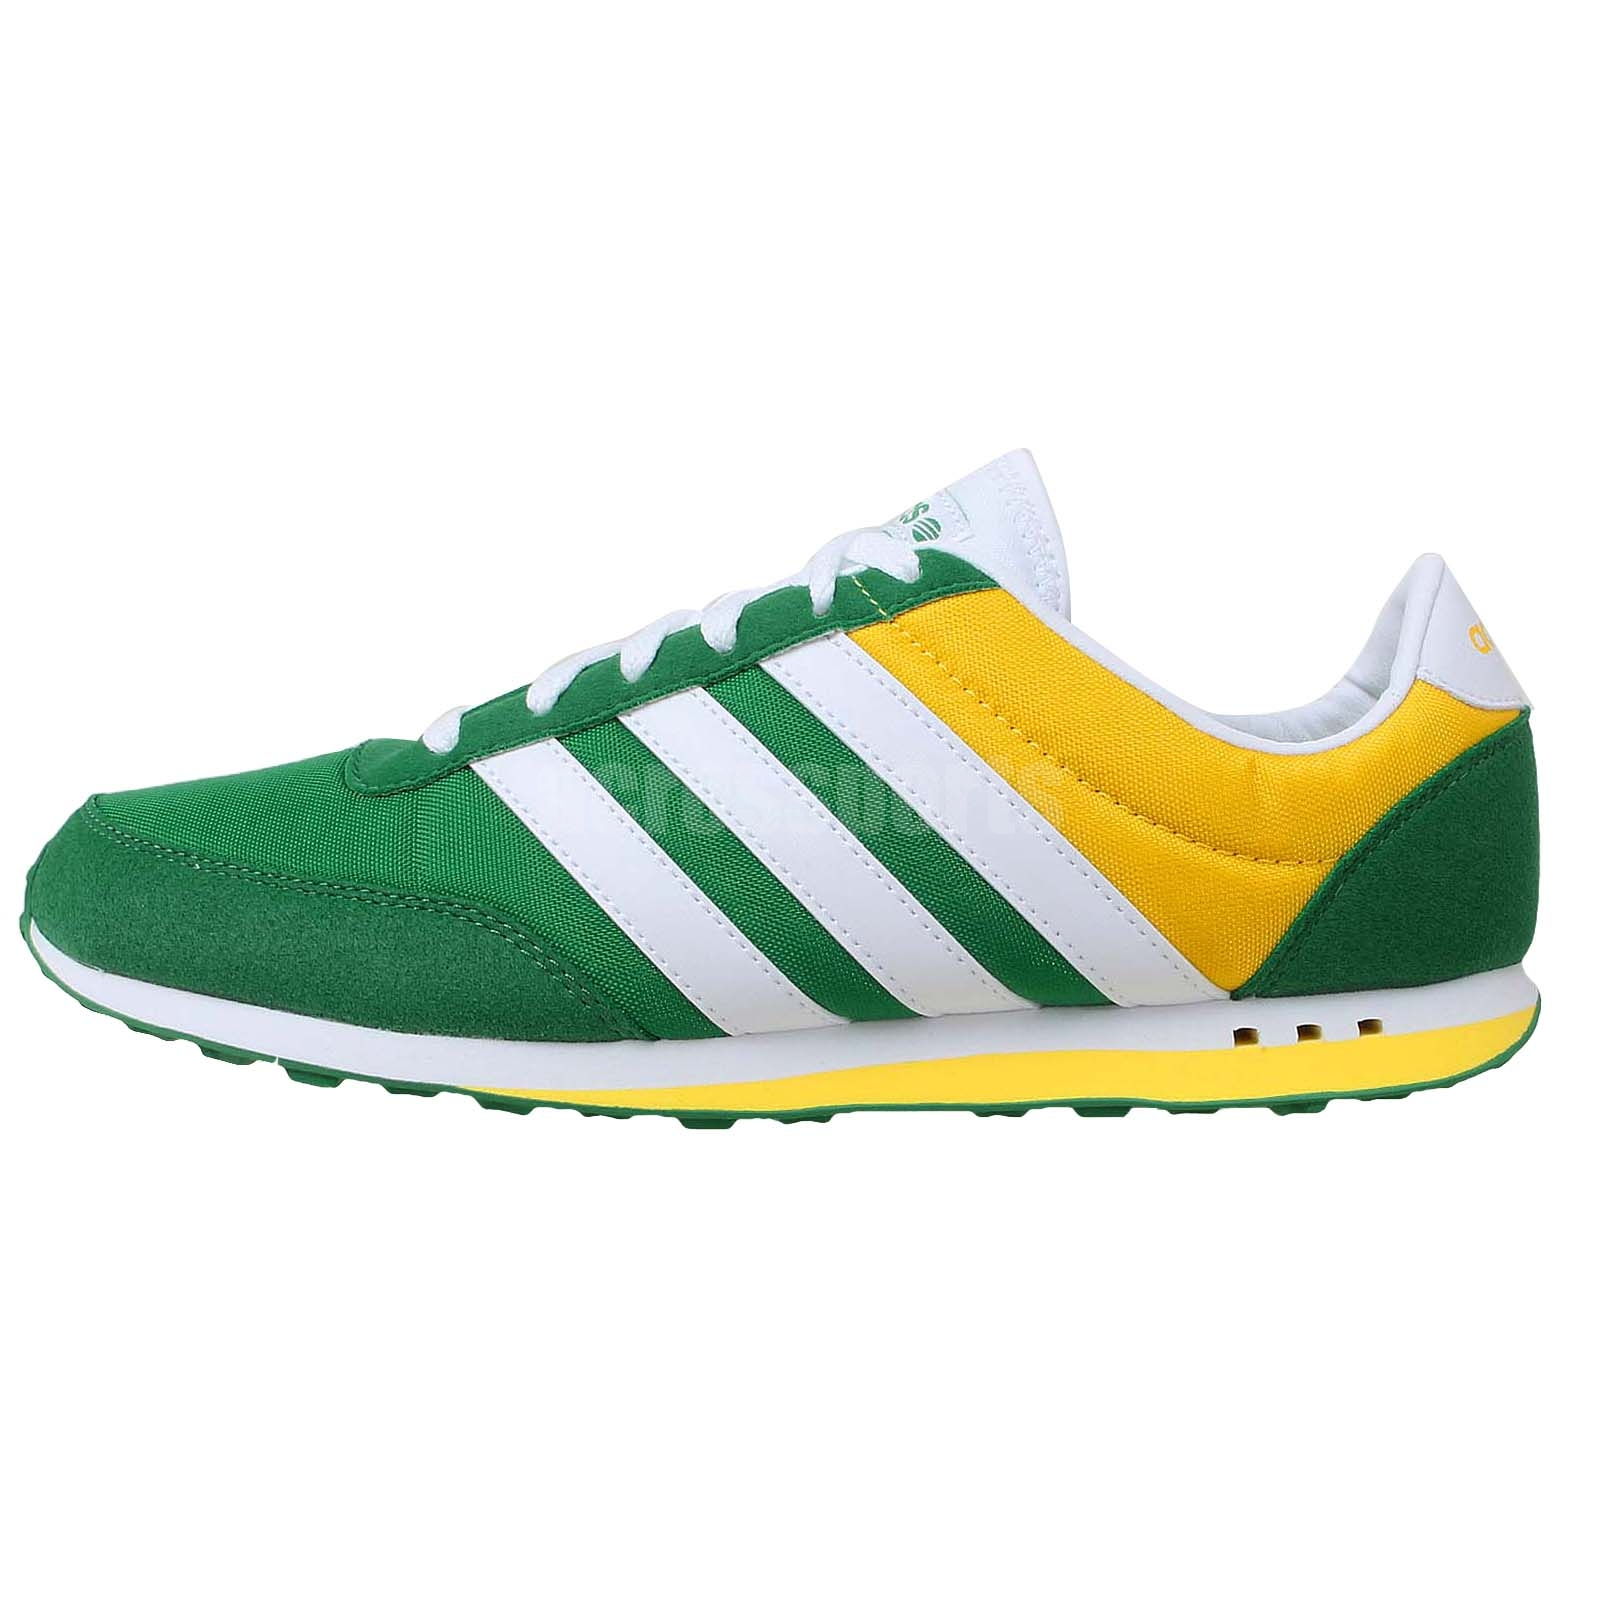 adidas v racer nylon neo label green white yellow 2014. Black Bedroom Furniture Sets. Home Design Ideas